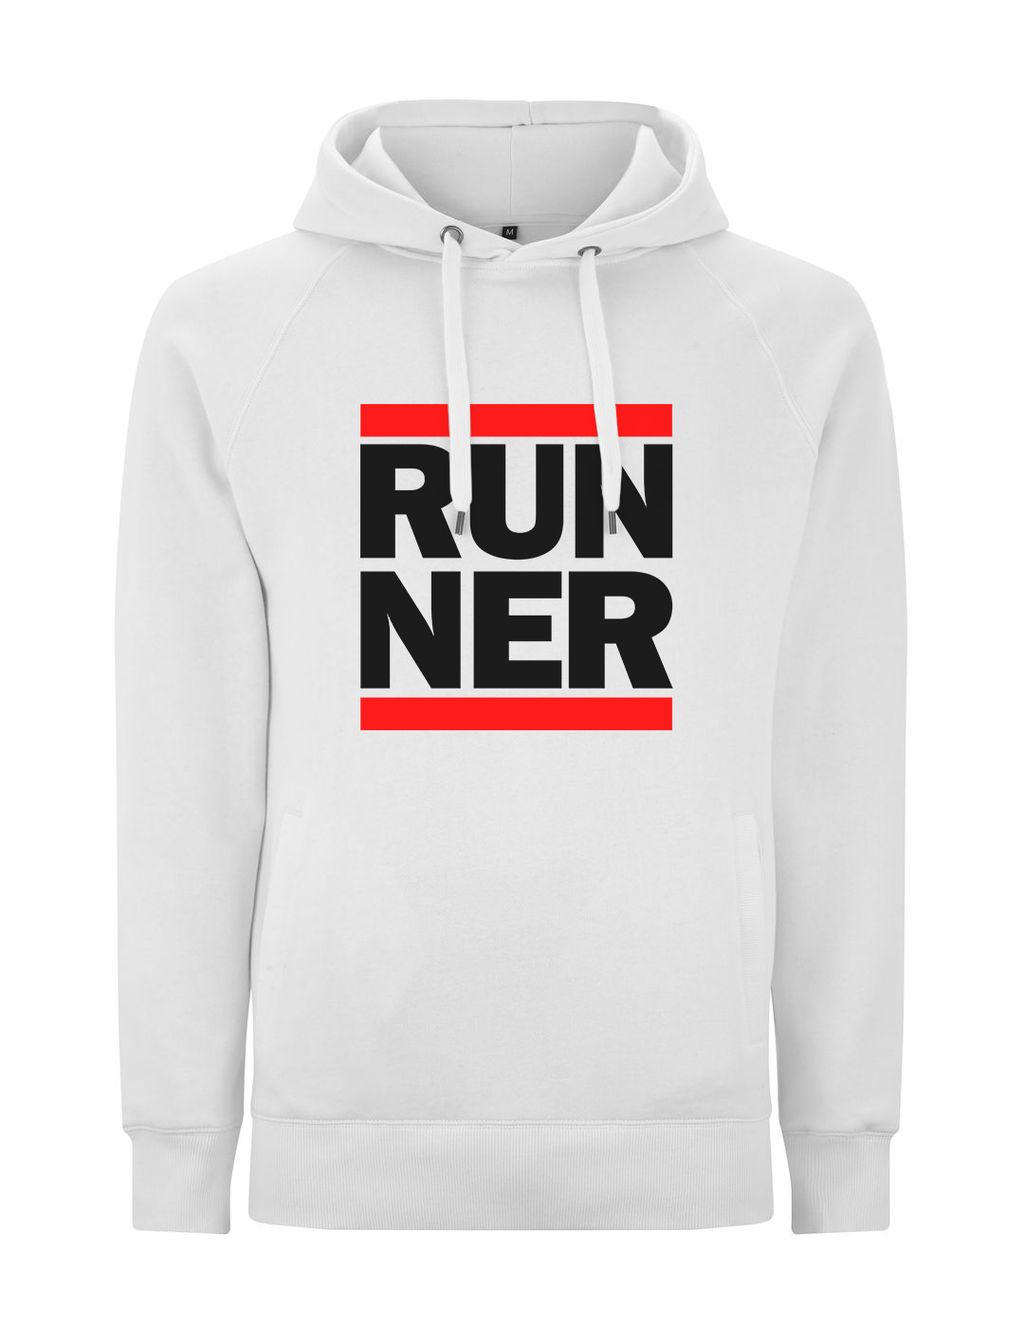 Run This Way Unisex Hoodie